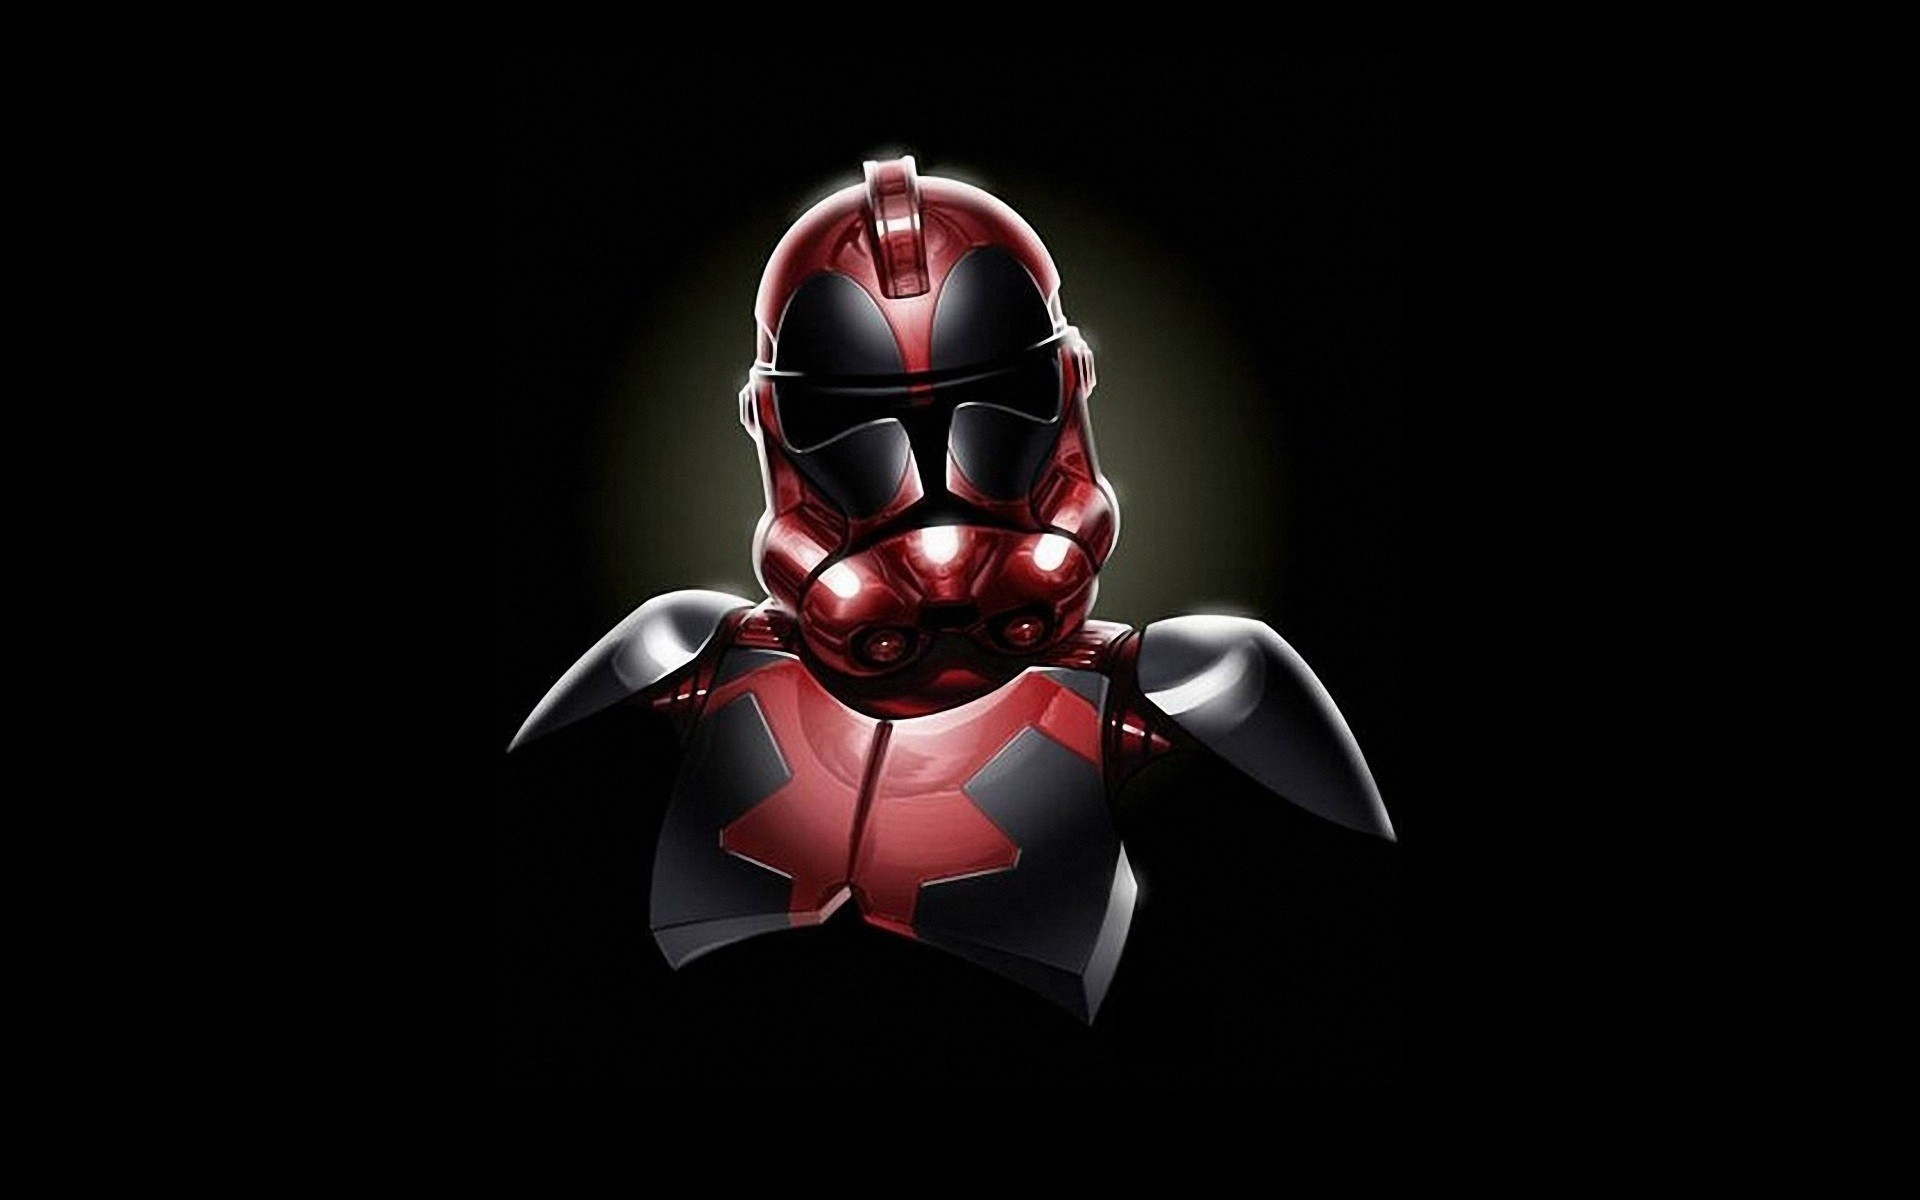 Star wars cool wallpaper 76 images - Star wars cool backgrounds ...